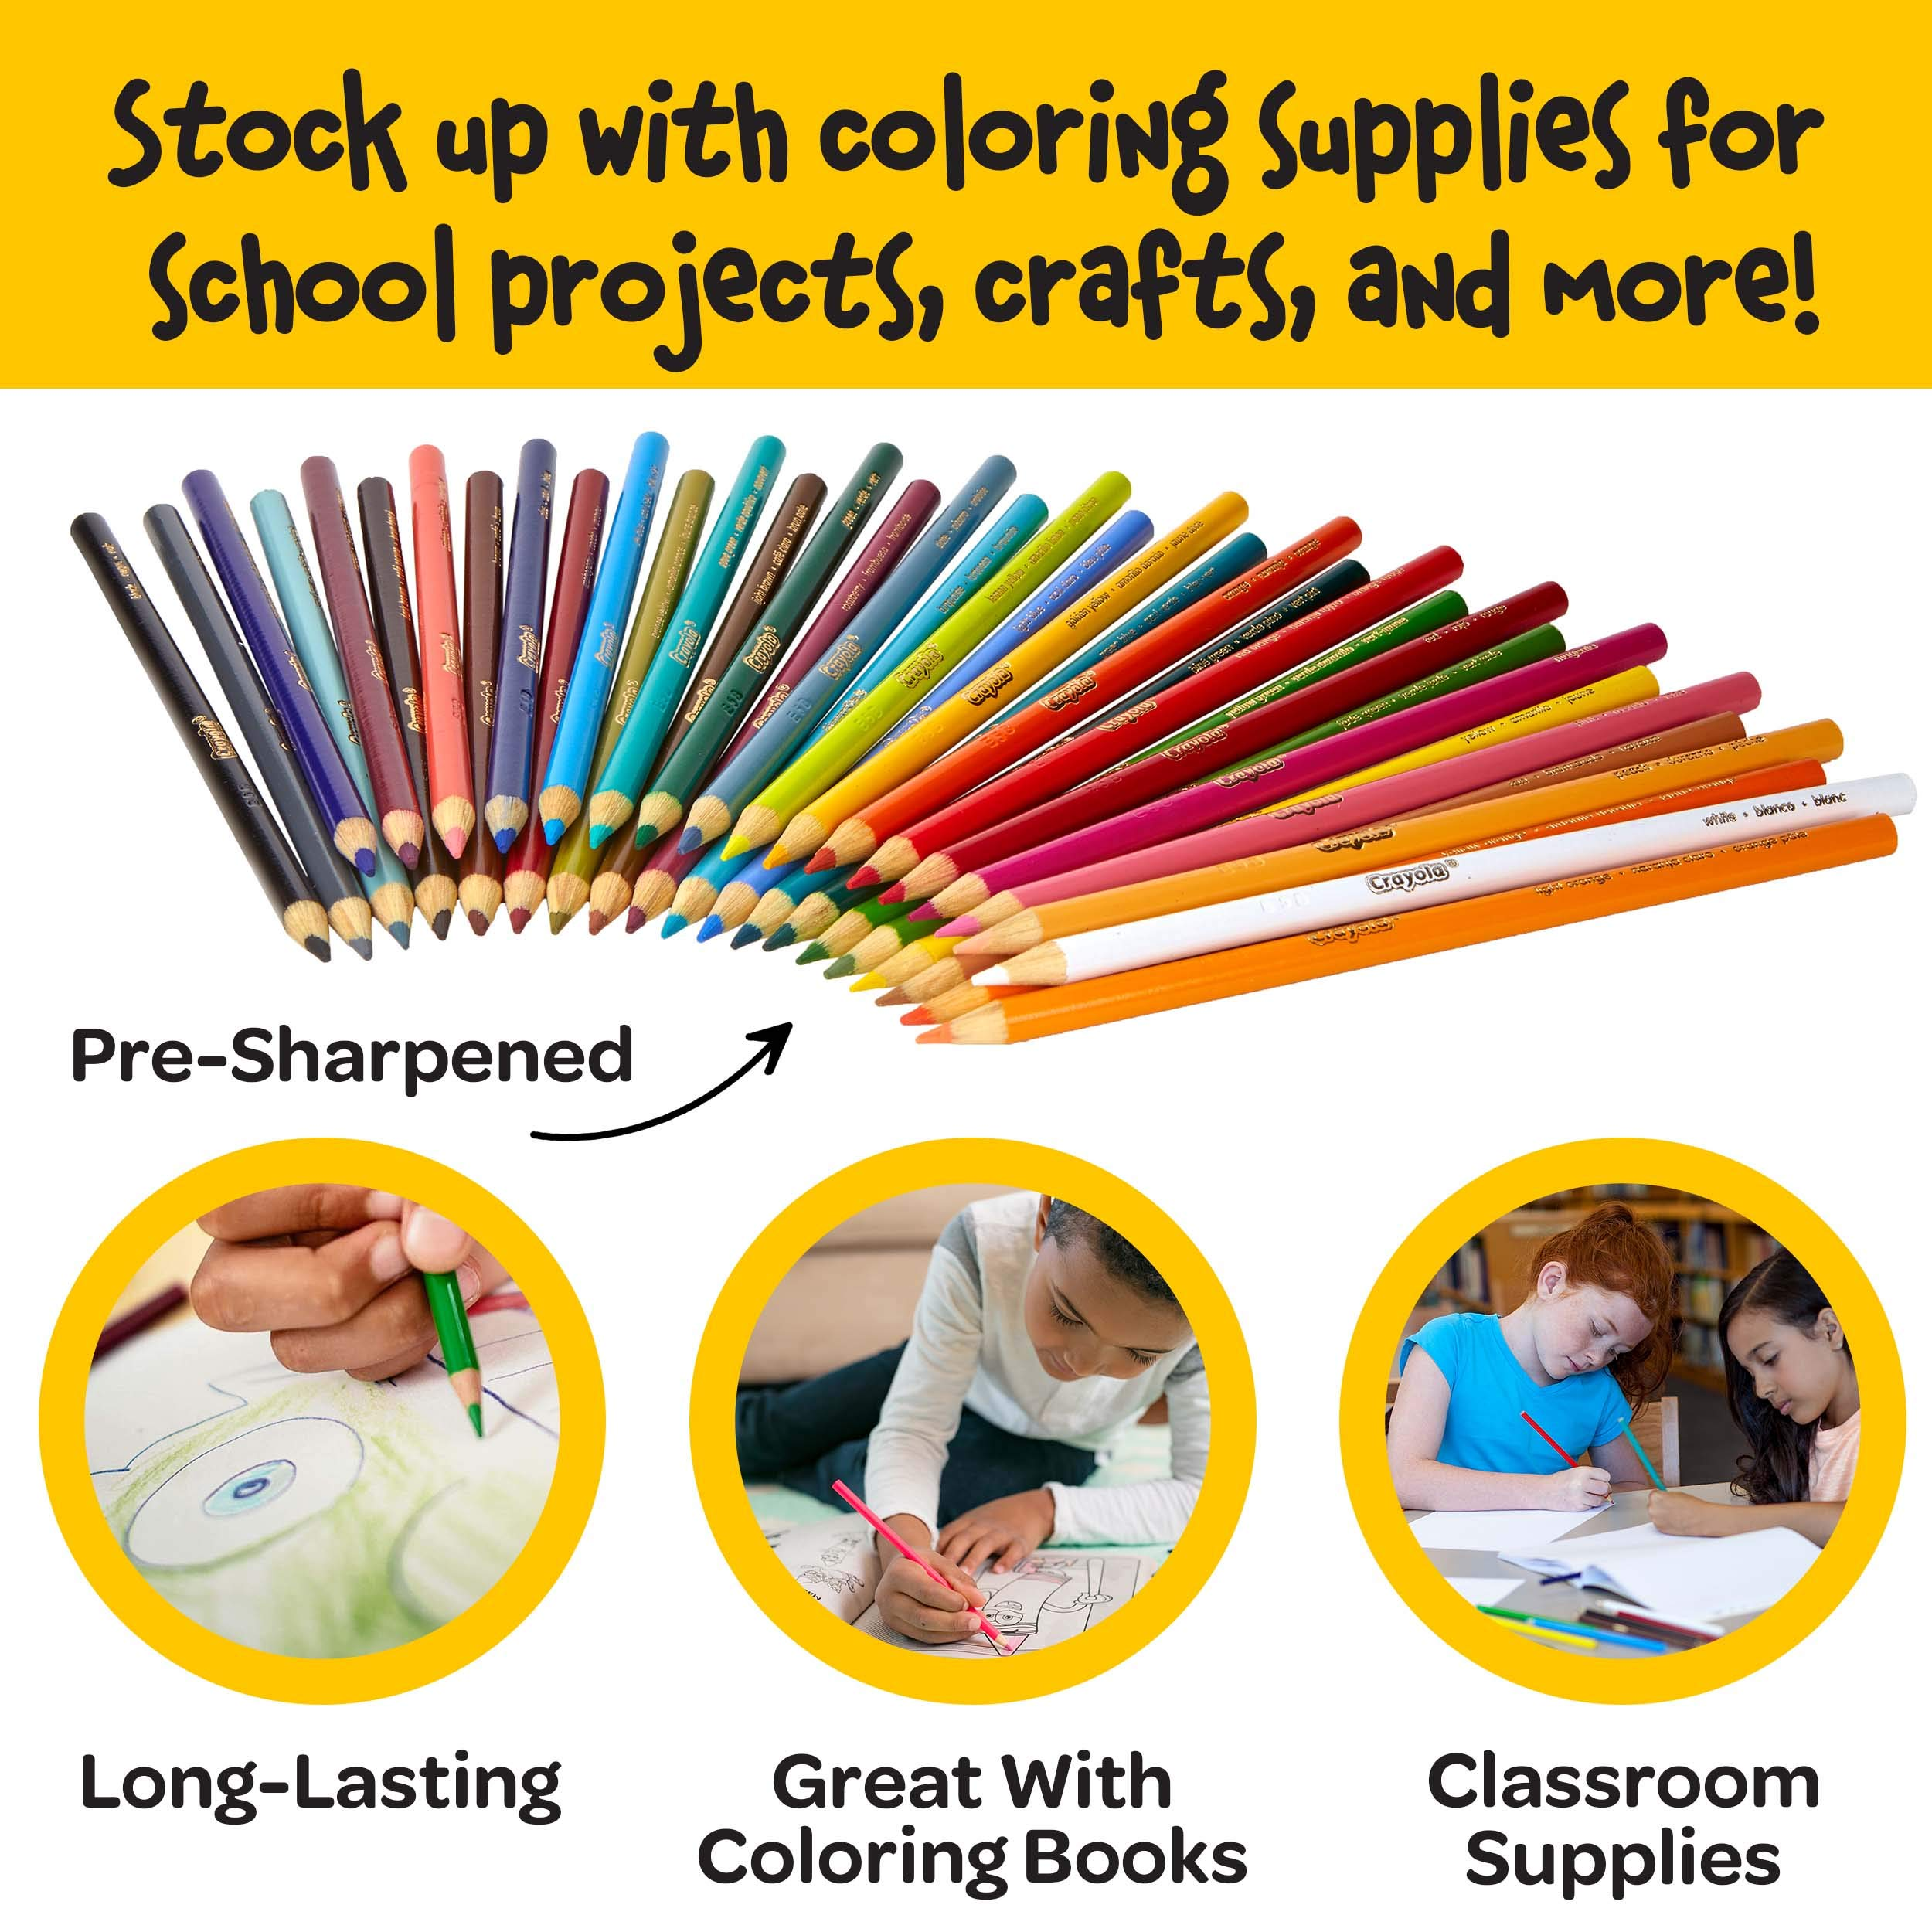 Crayola Colored Pencil Set, School Supplies, Assorted Colors, 36 Count, Long